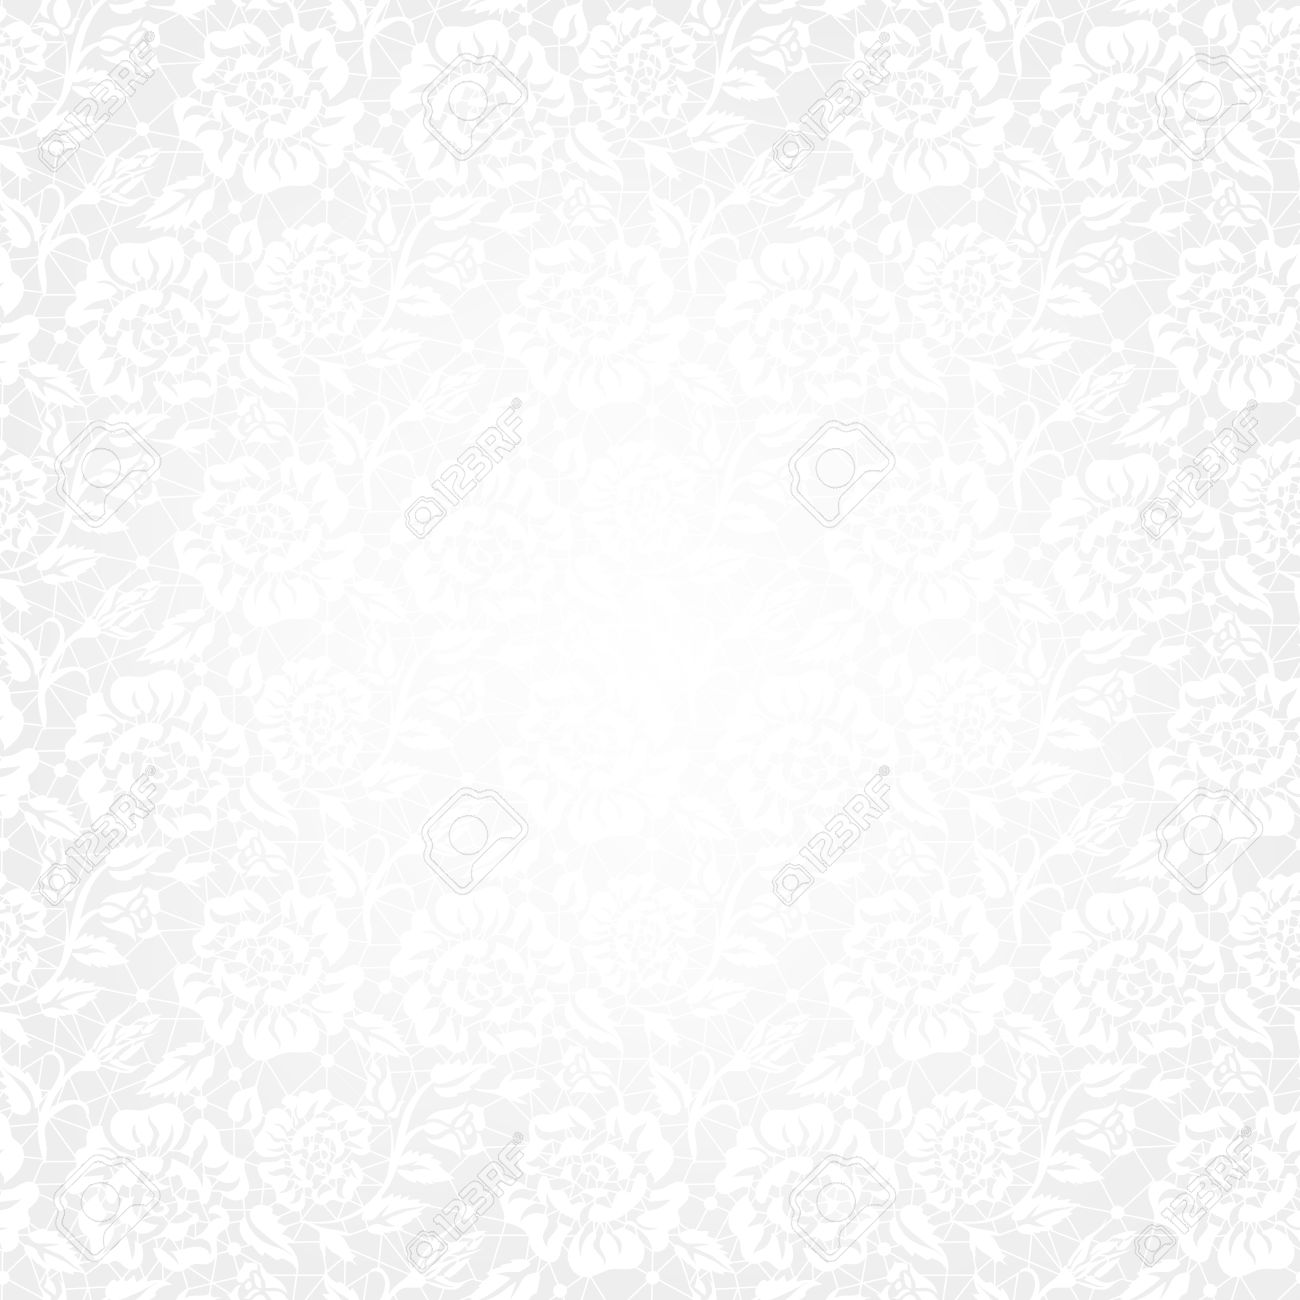 Template For Wedding, Invitation Or Greeting Card With White ...